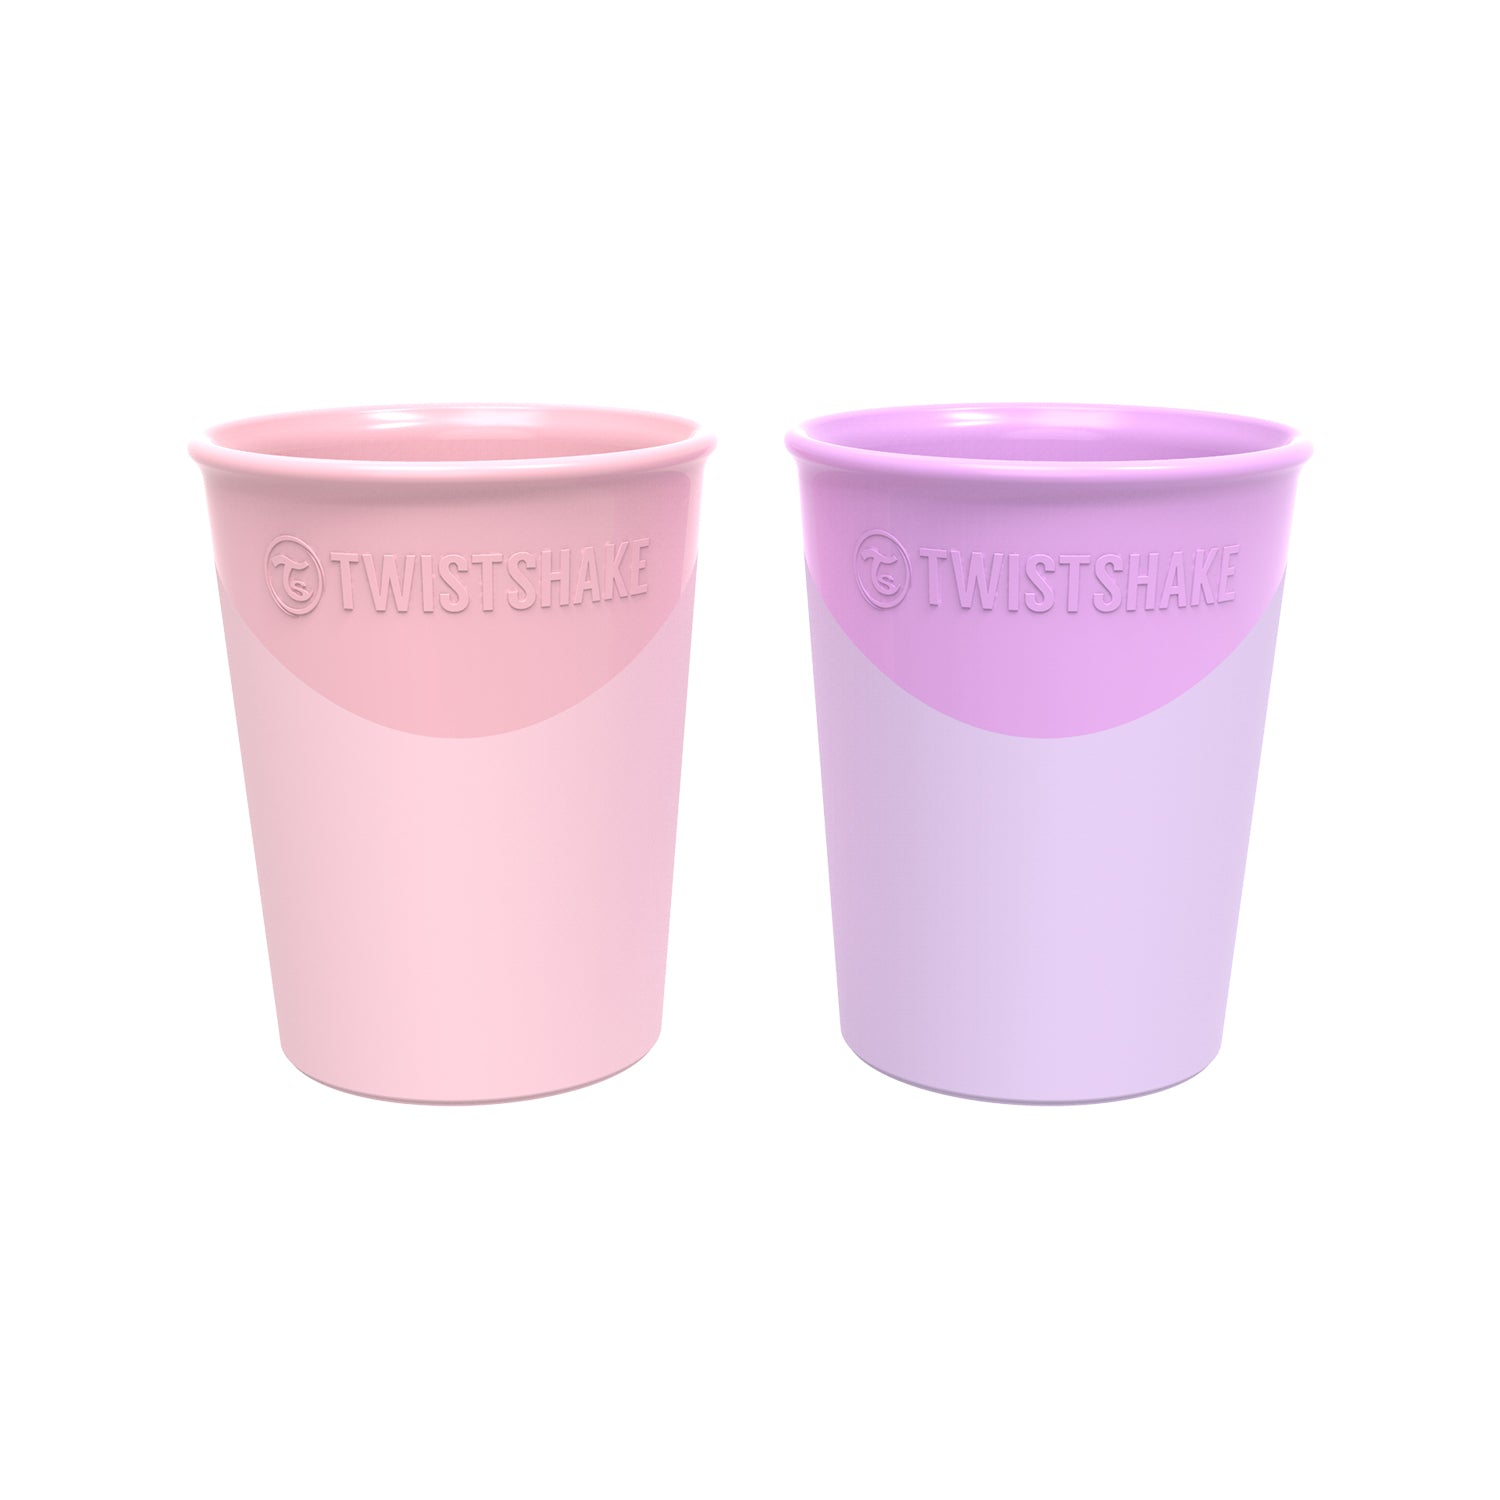 Twistshake cups